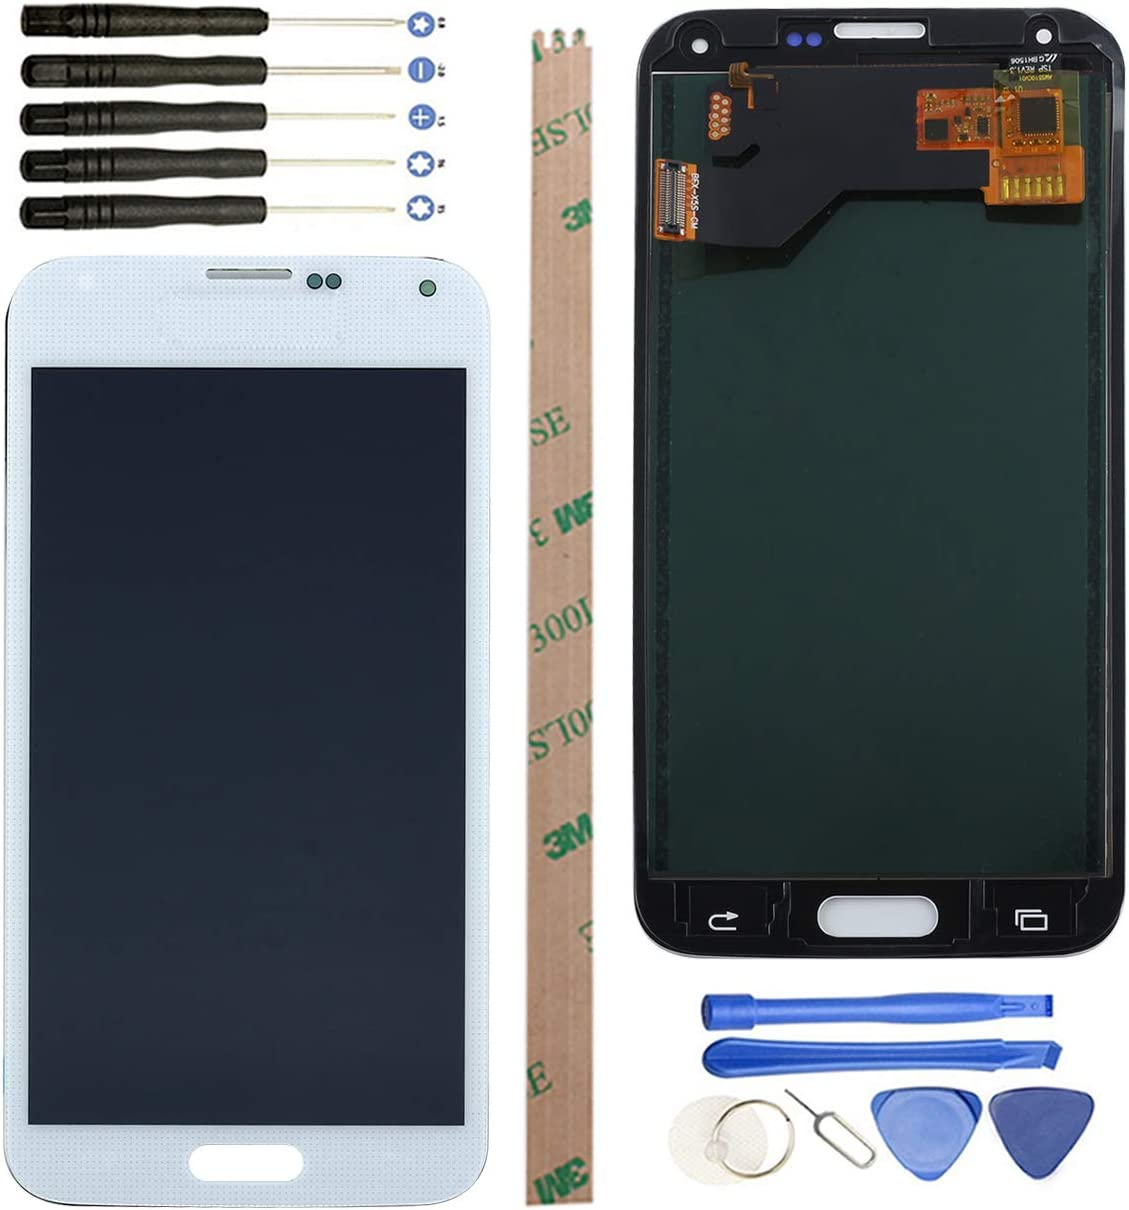 YHX-US Replacement LCD Display for Samsung Galaxy S5 I9600 SM-G900 G900A G900T G900V G900P Digitizer Screen and Touch Screen +A Set of Tools (White)